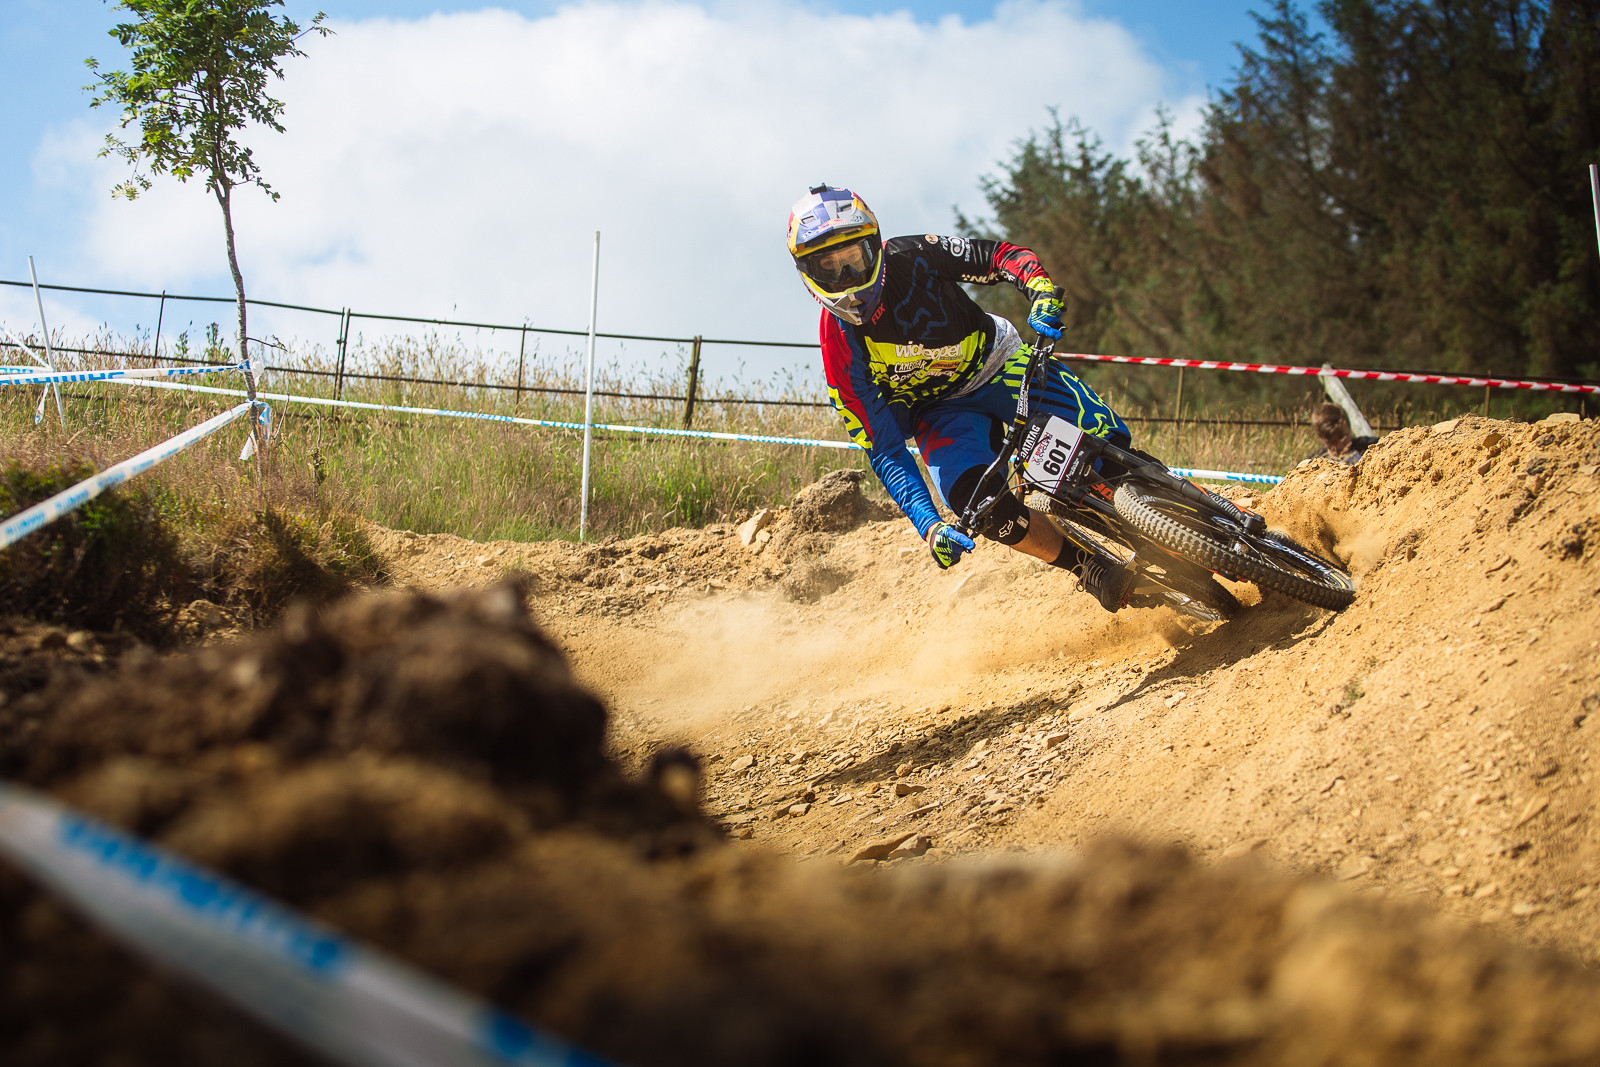 Kye Forte - 2015 British National Champs Downhill - 2015 British National Champs Downhill Photos - Mountain Biking Pictures - Vital MTB